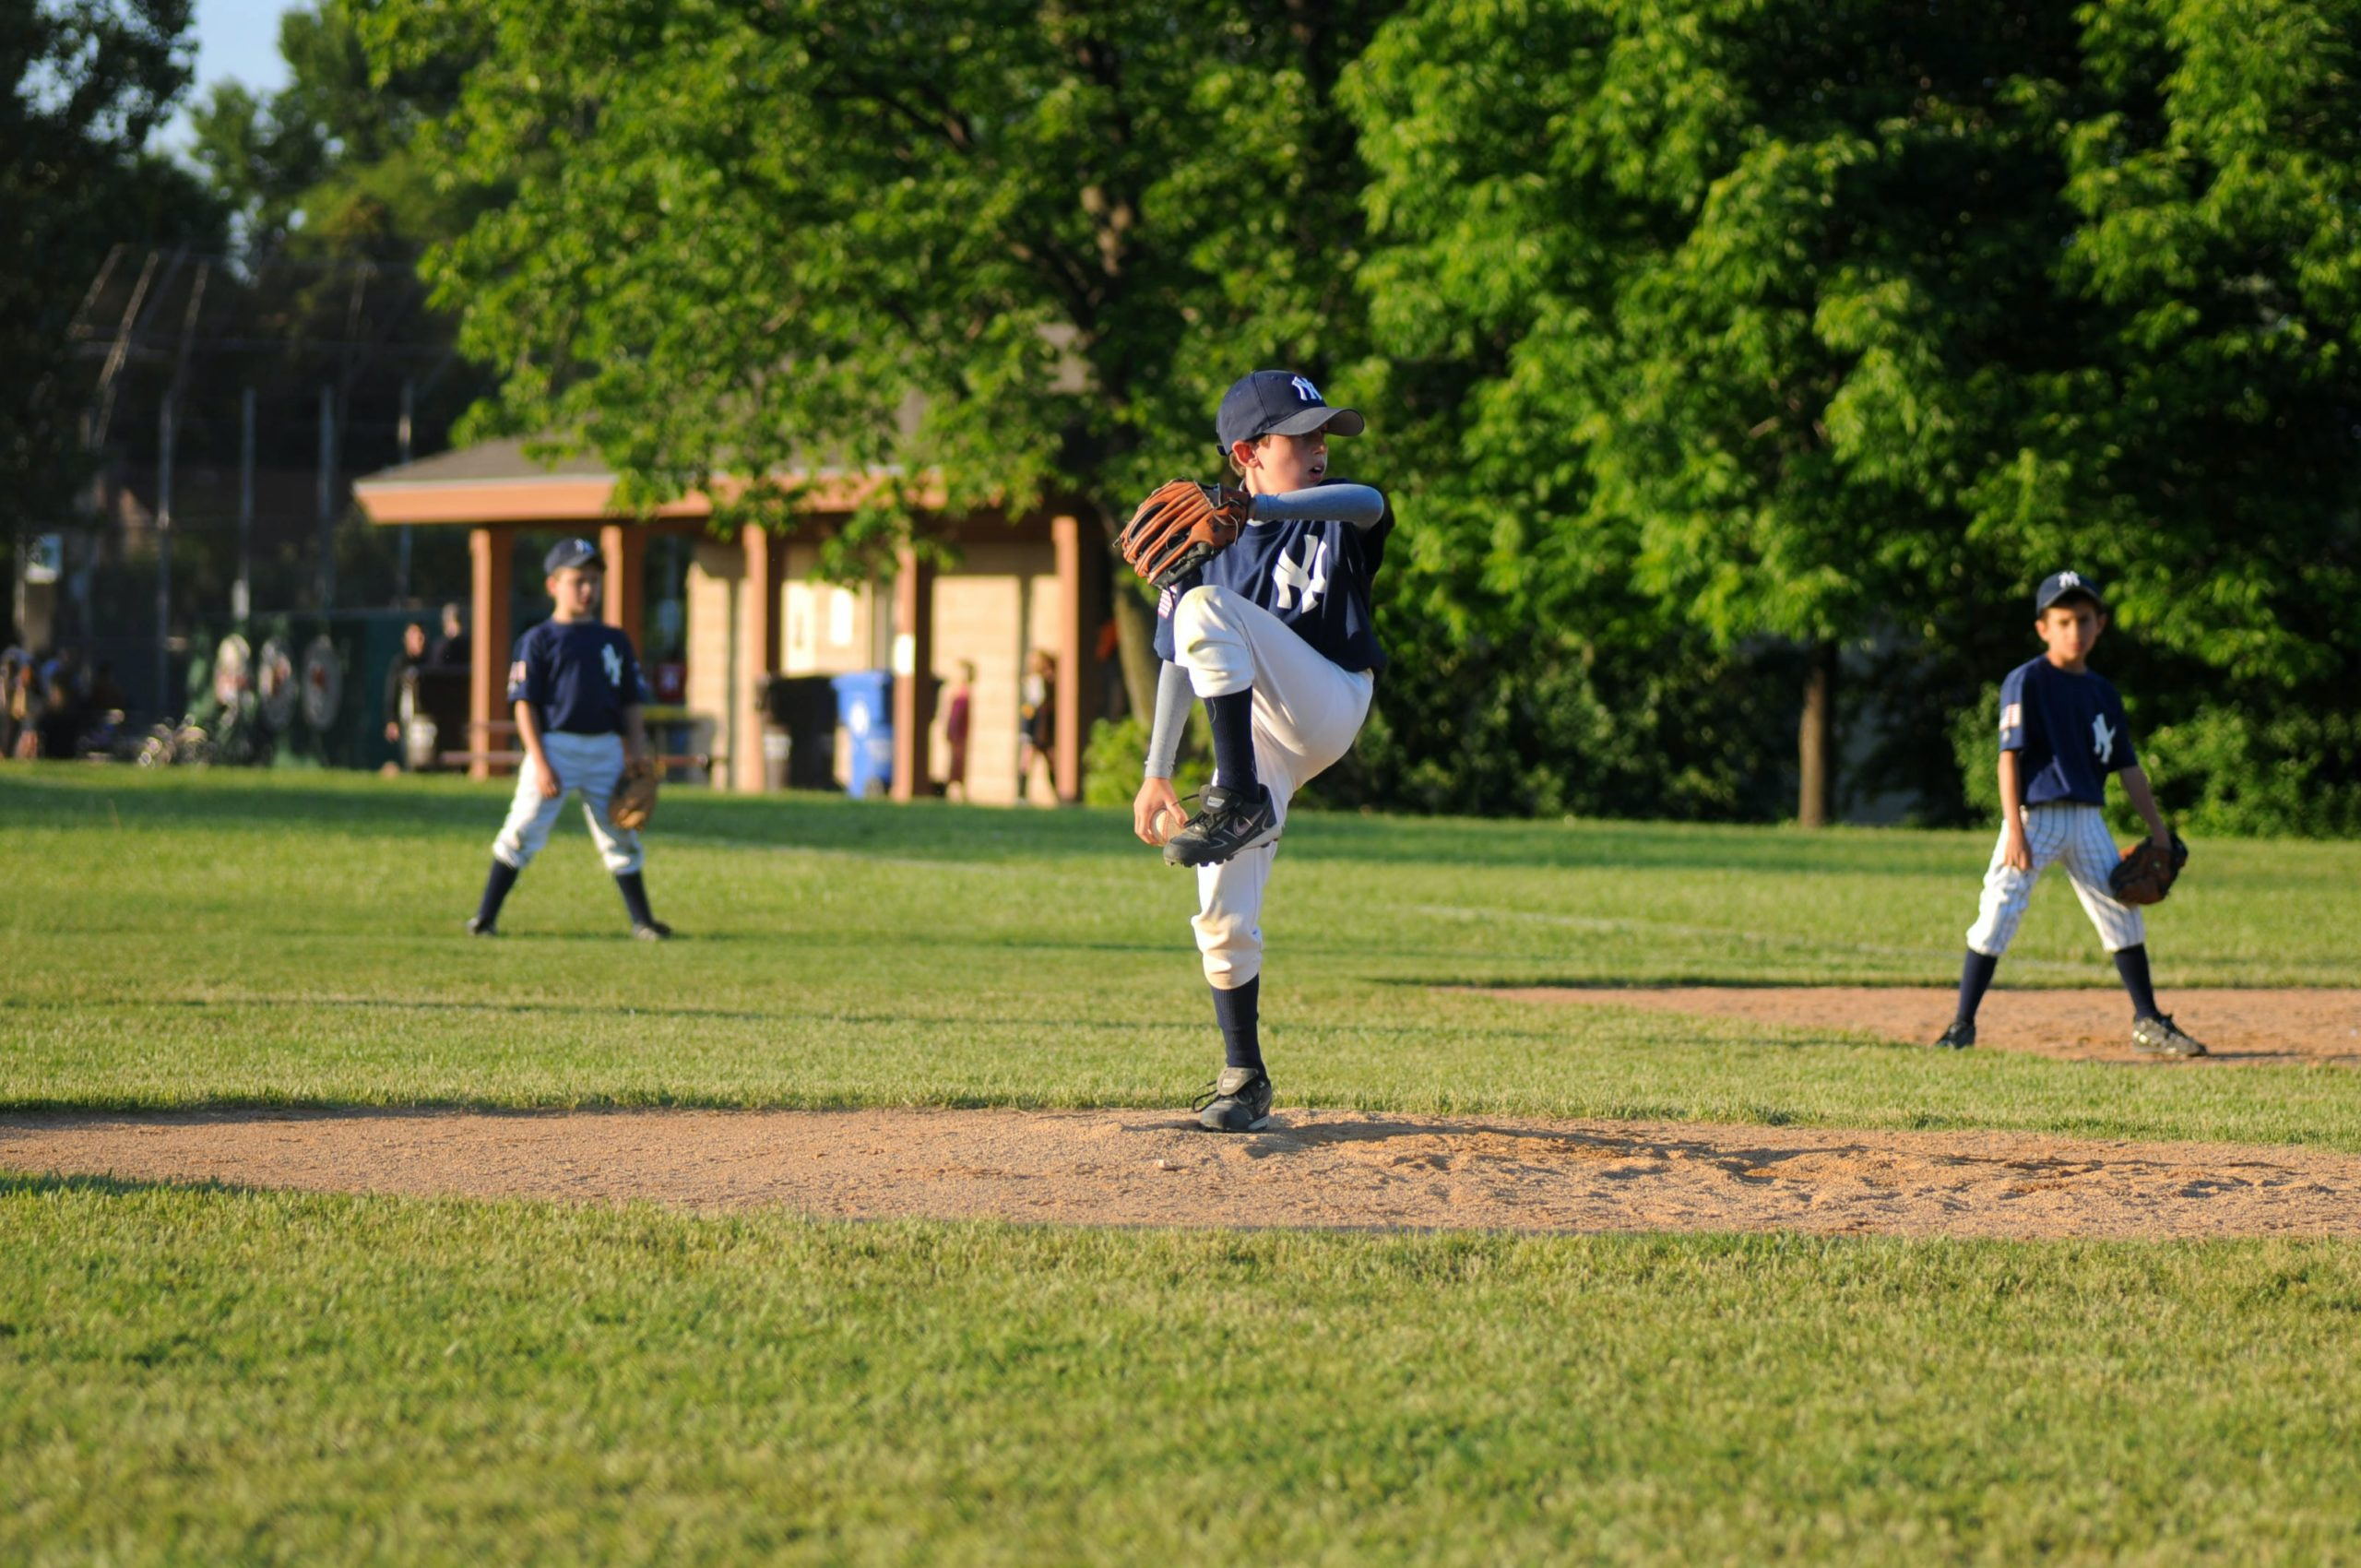 Youth Pitching Position Myth: Wide Stance